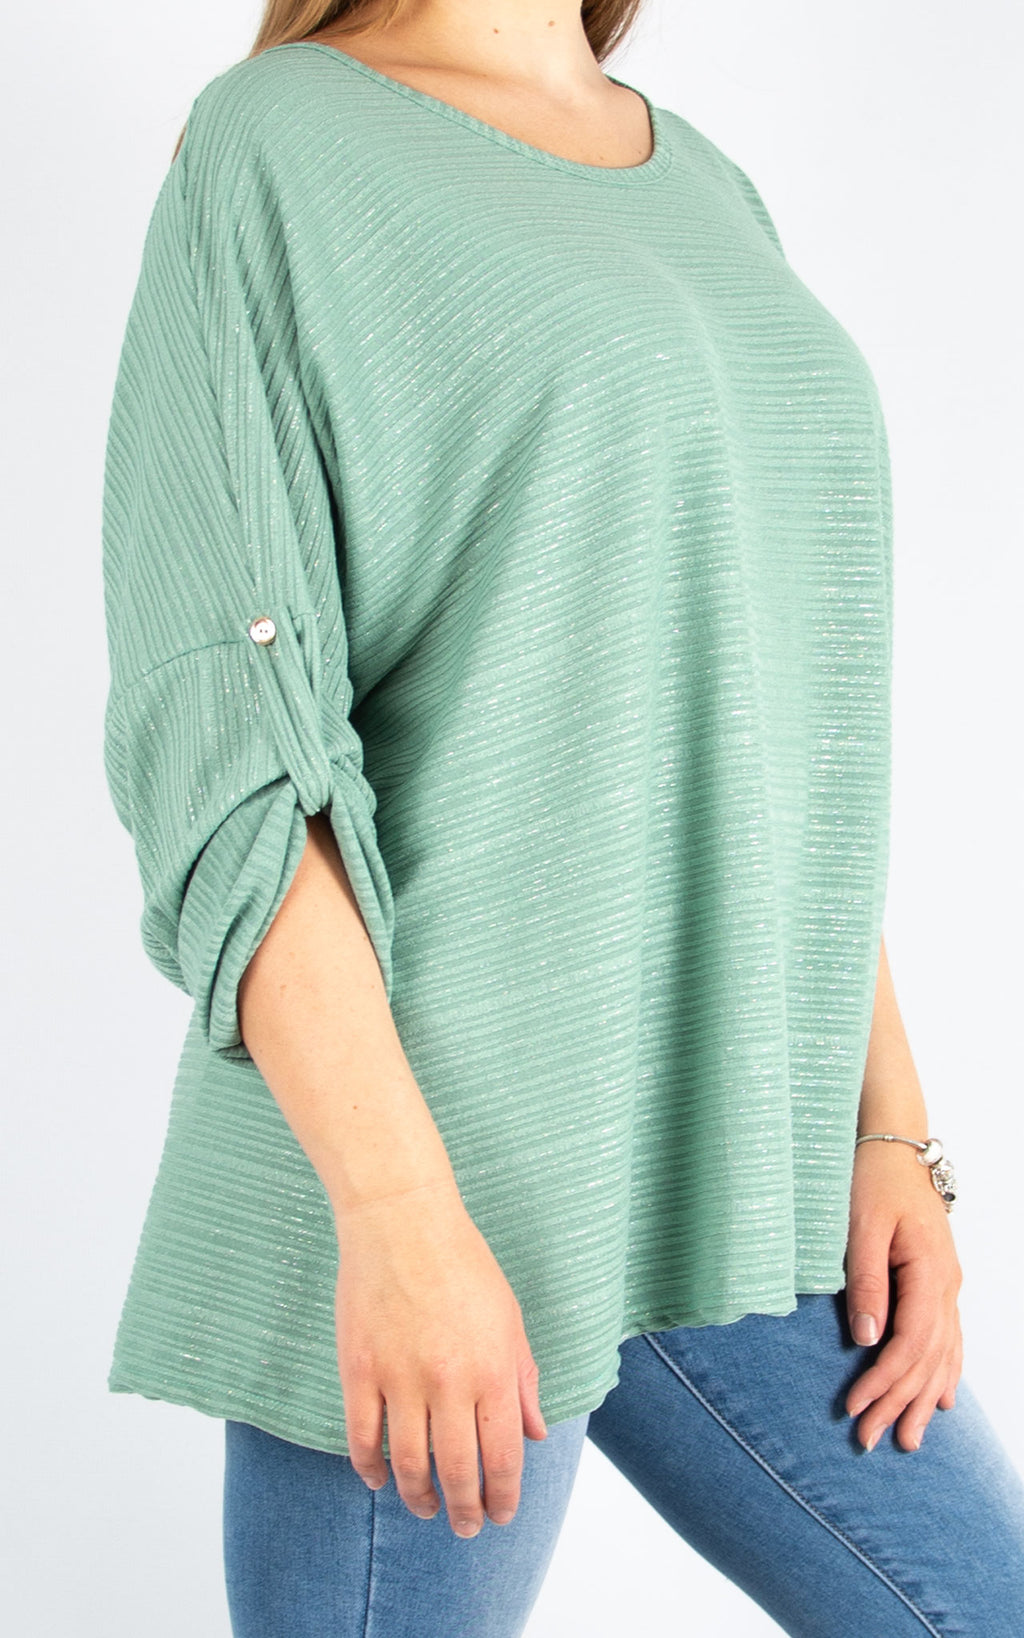 Green Button Up Sleeve | Made in Italy